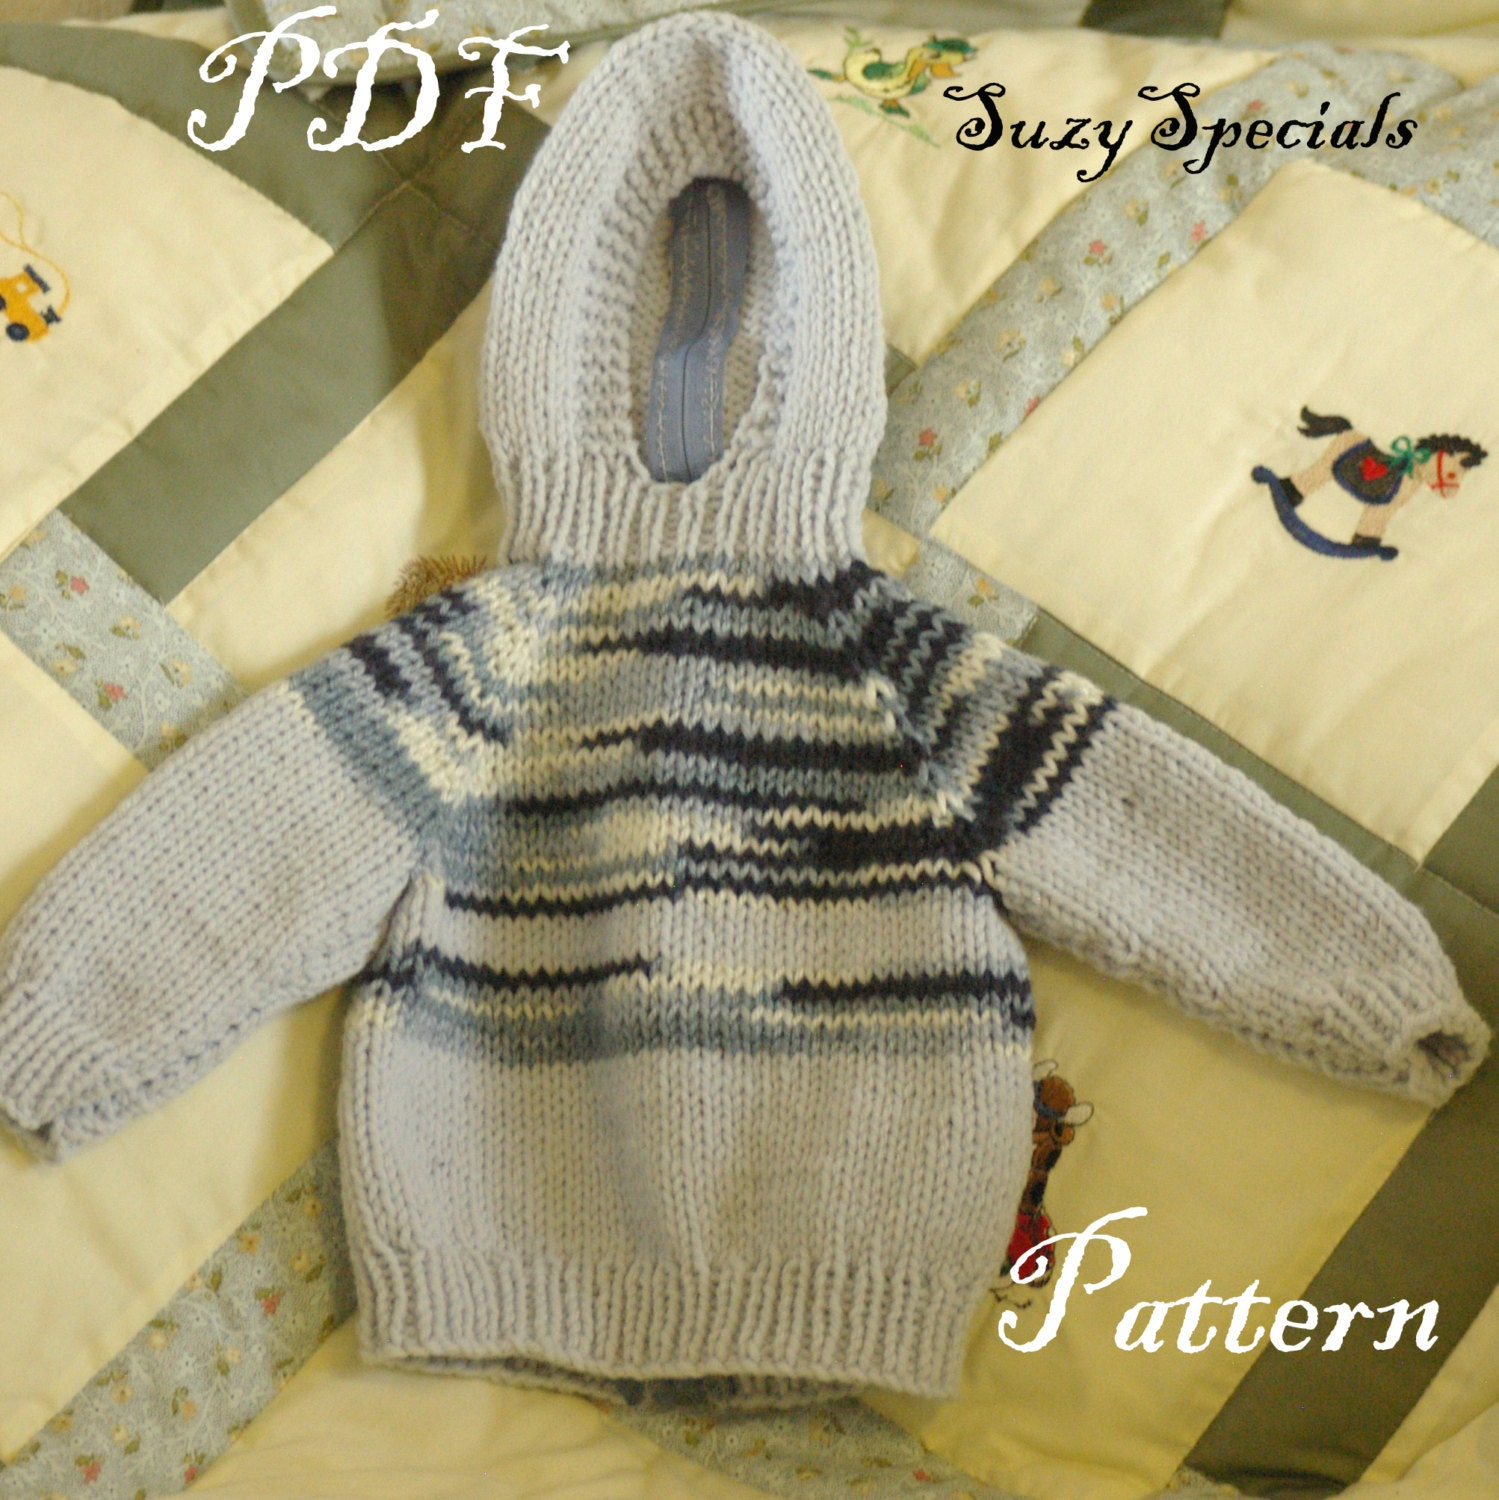 Knitting Pattern For Baby Sweater With Zipper In The Back : Pattern for Knitted Hooded Baby Sweater with Back by SuzySpecials